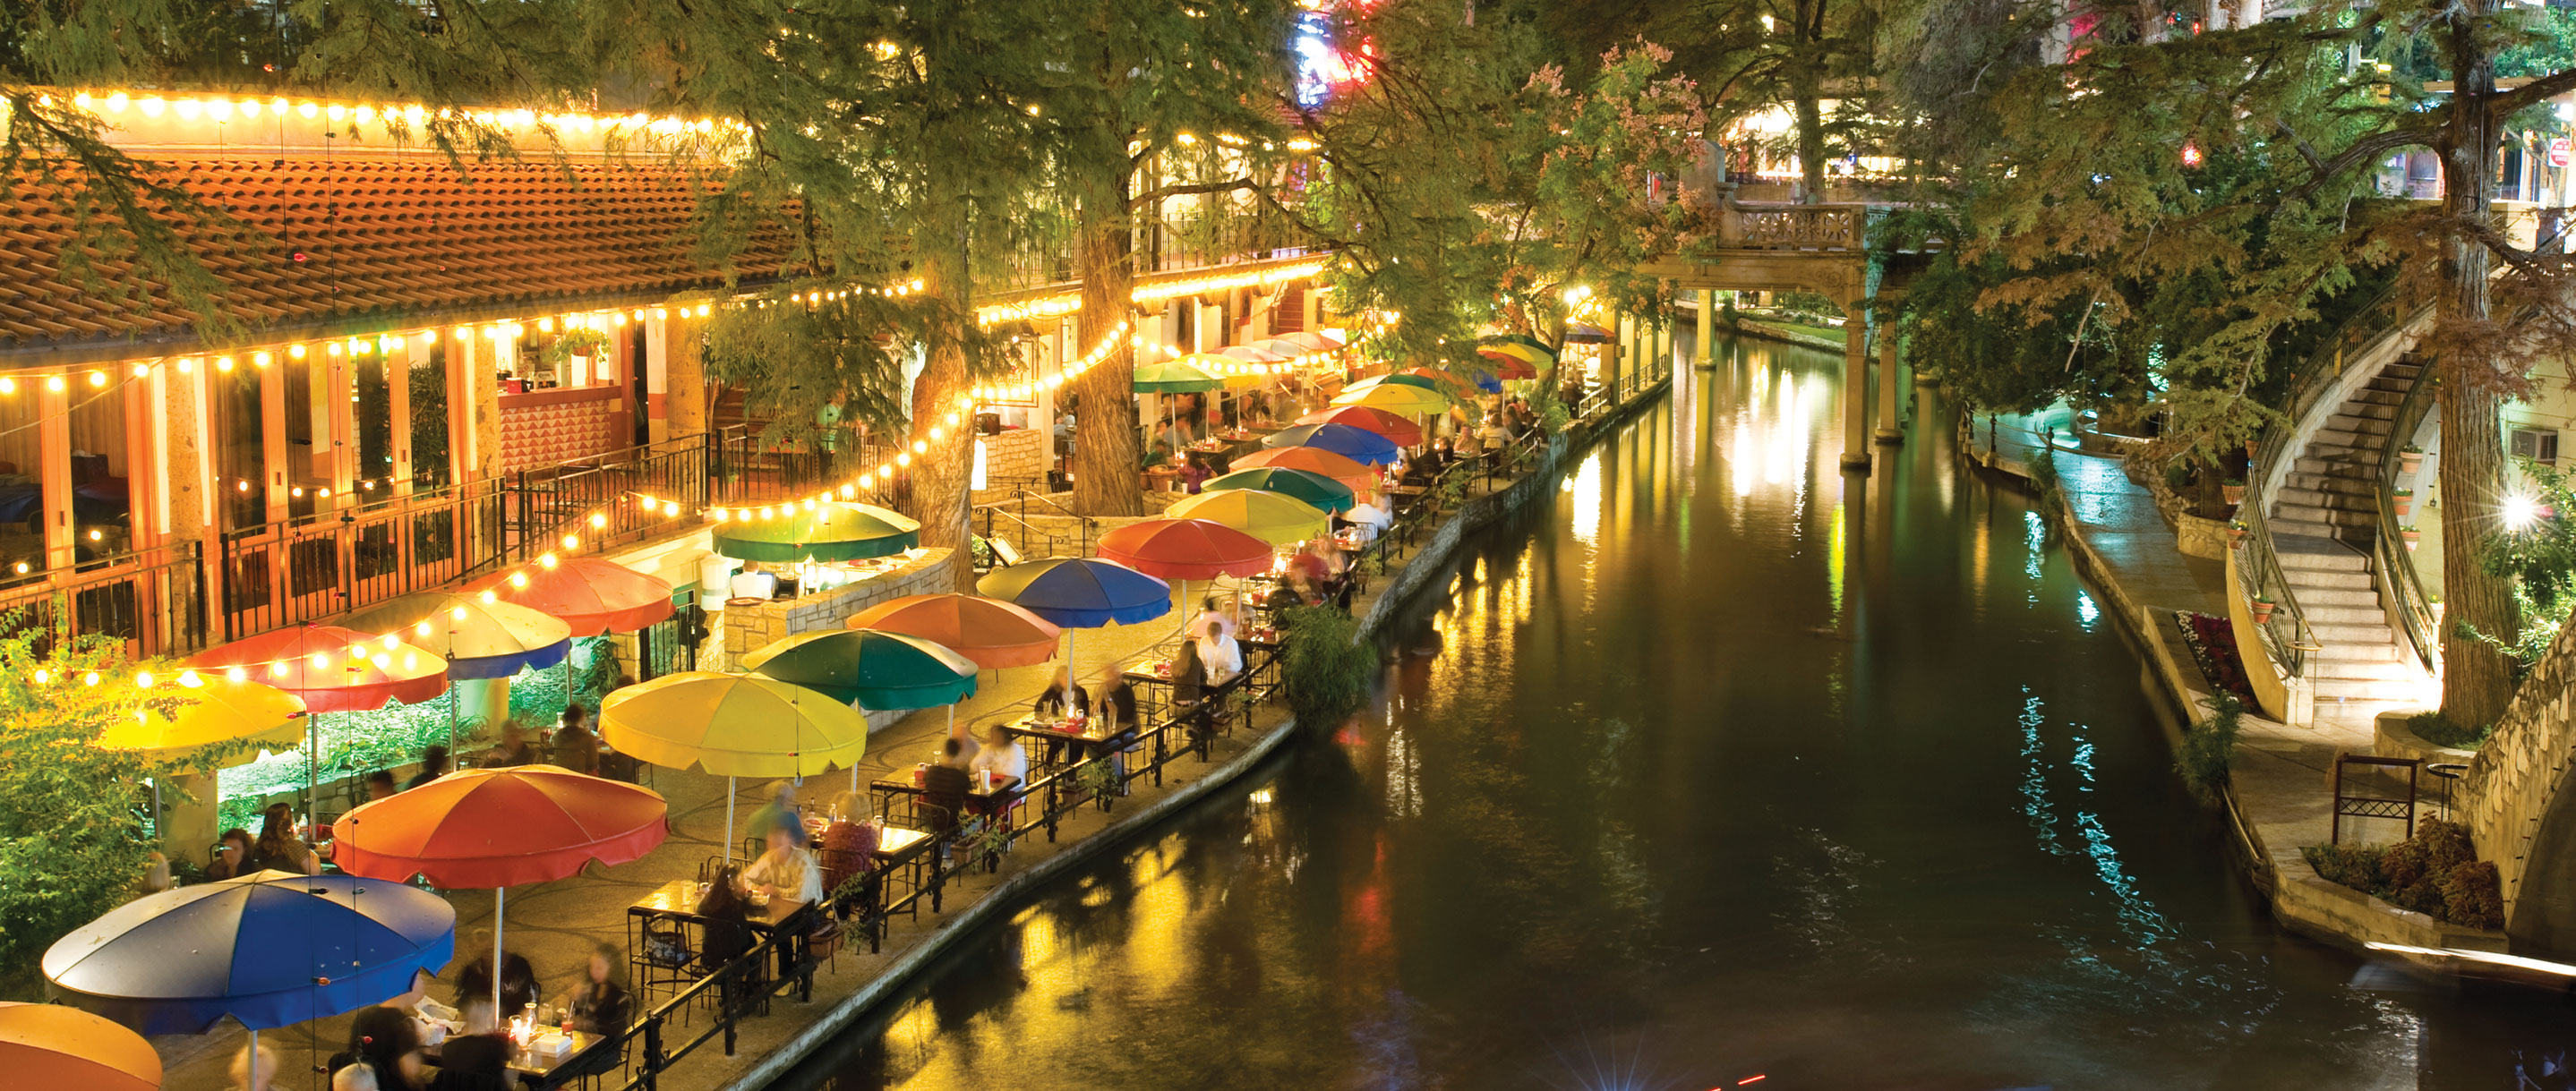 A Relaxing Riverwalk Christmas 171 R Amp J Tours